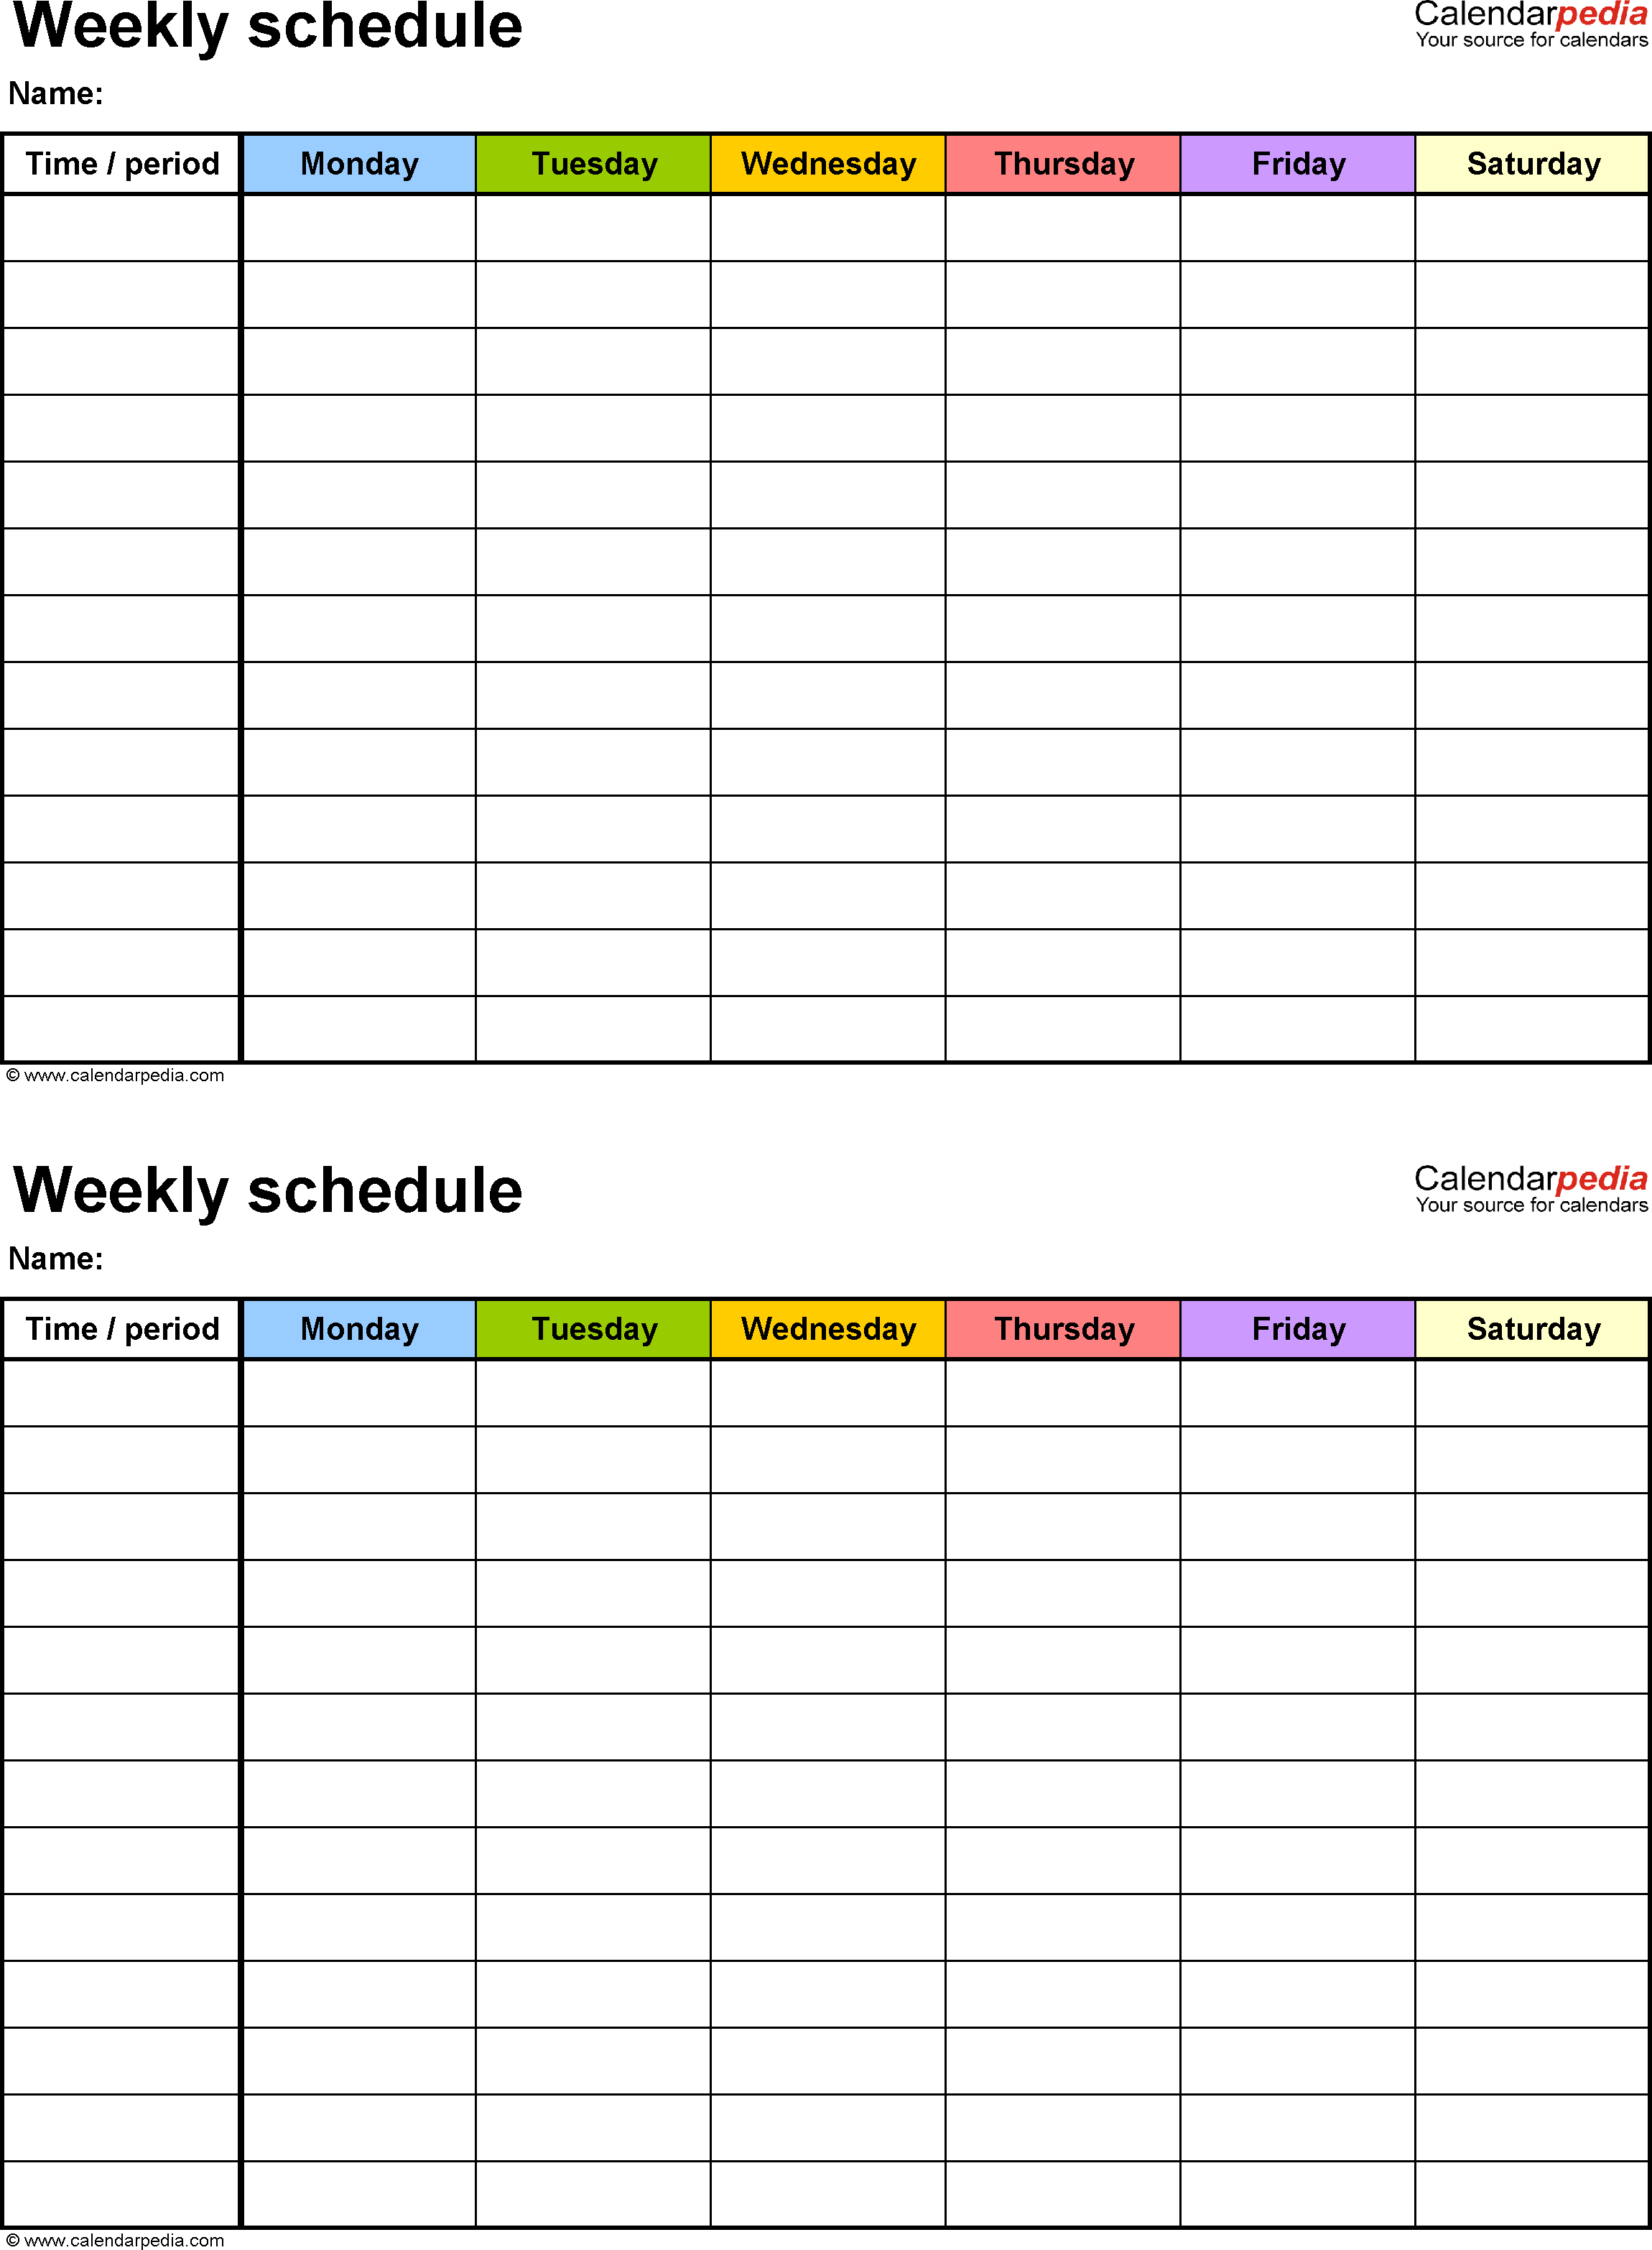 Free Weekly Schedule Templates For Word  18 Templates pertaining to 5 Days A Week Planner